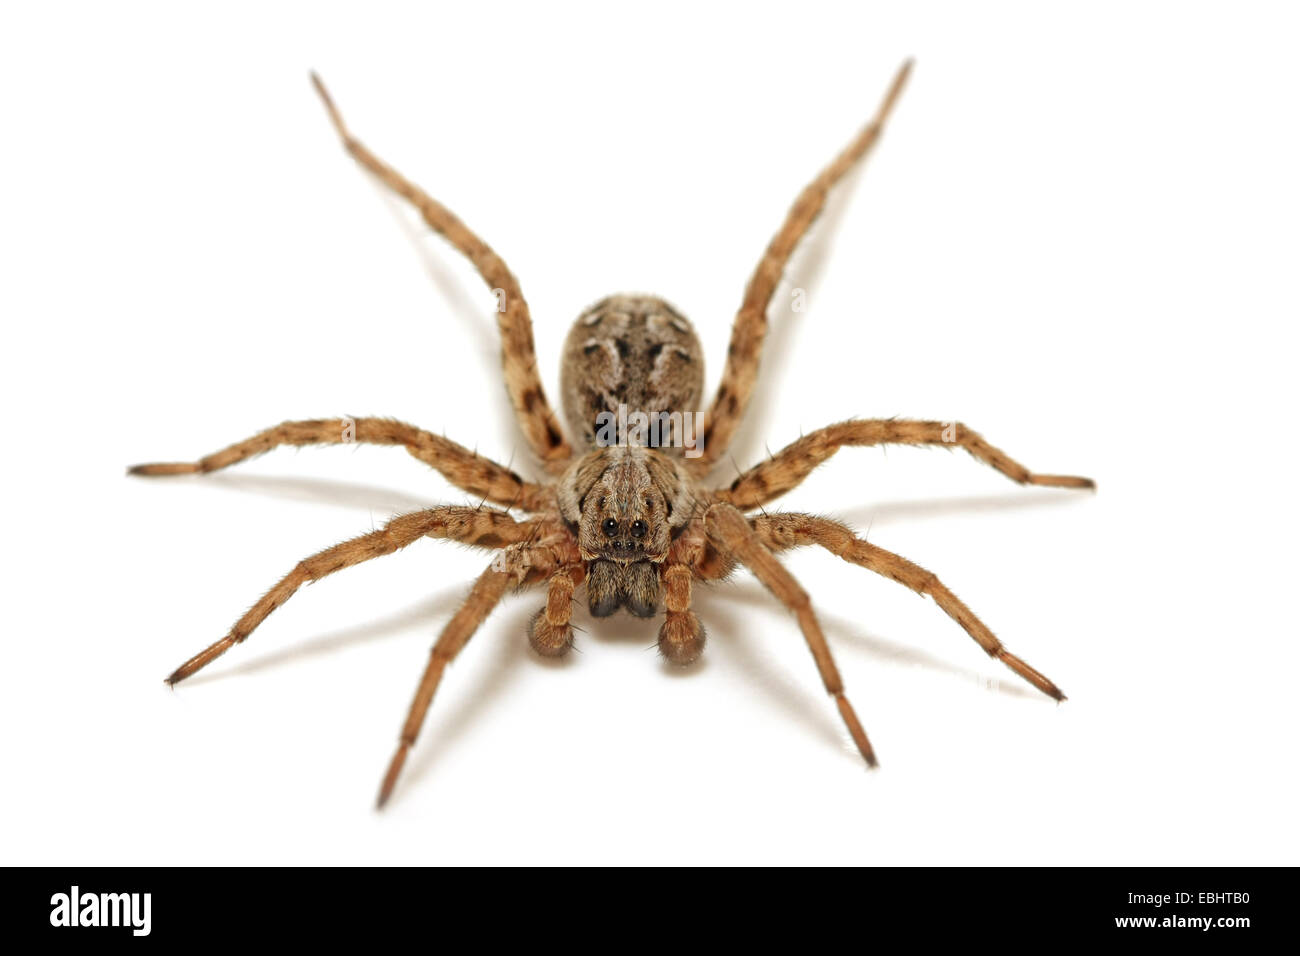 A Male Wolf spider (Alopecosa fabrilis) on white background. Wolf spiders are part of the family Lycosidae. - Stock Image